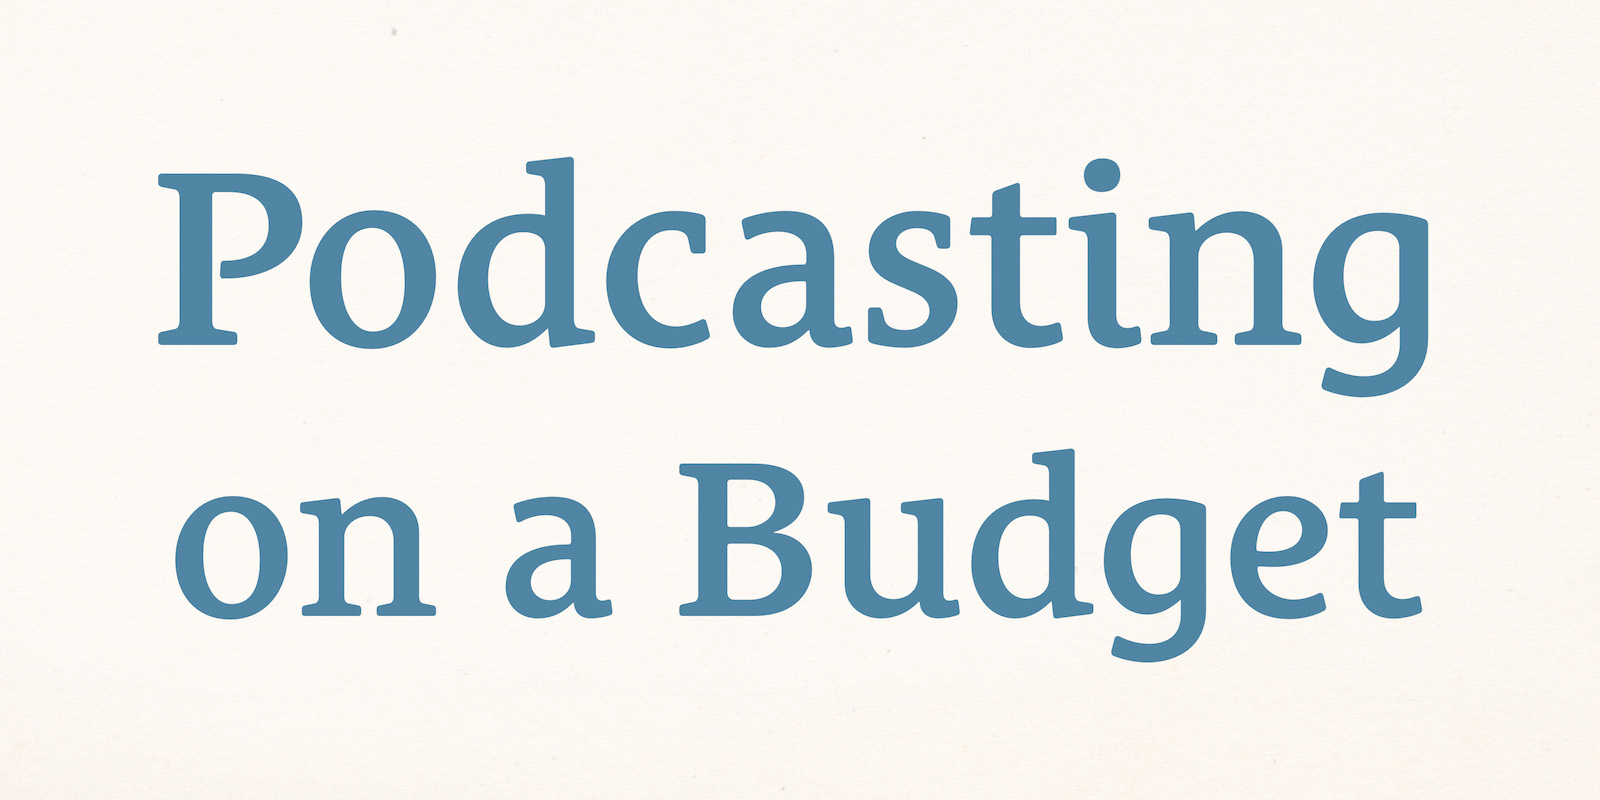 The Podcast Dude 32: Podcasting on a Budget